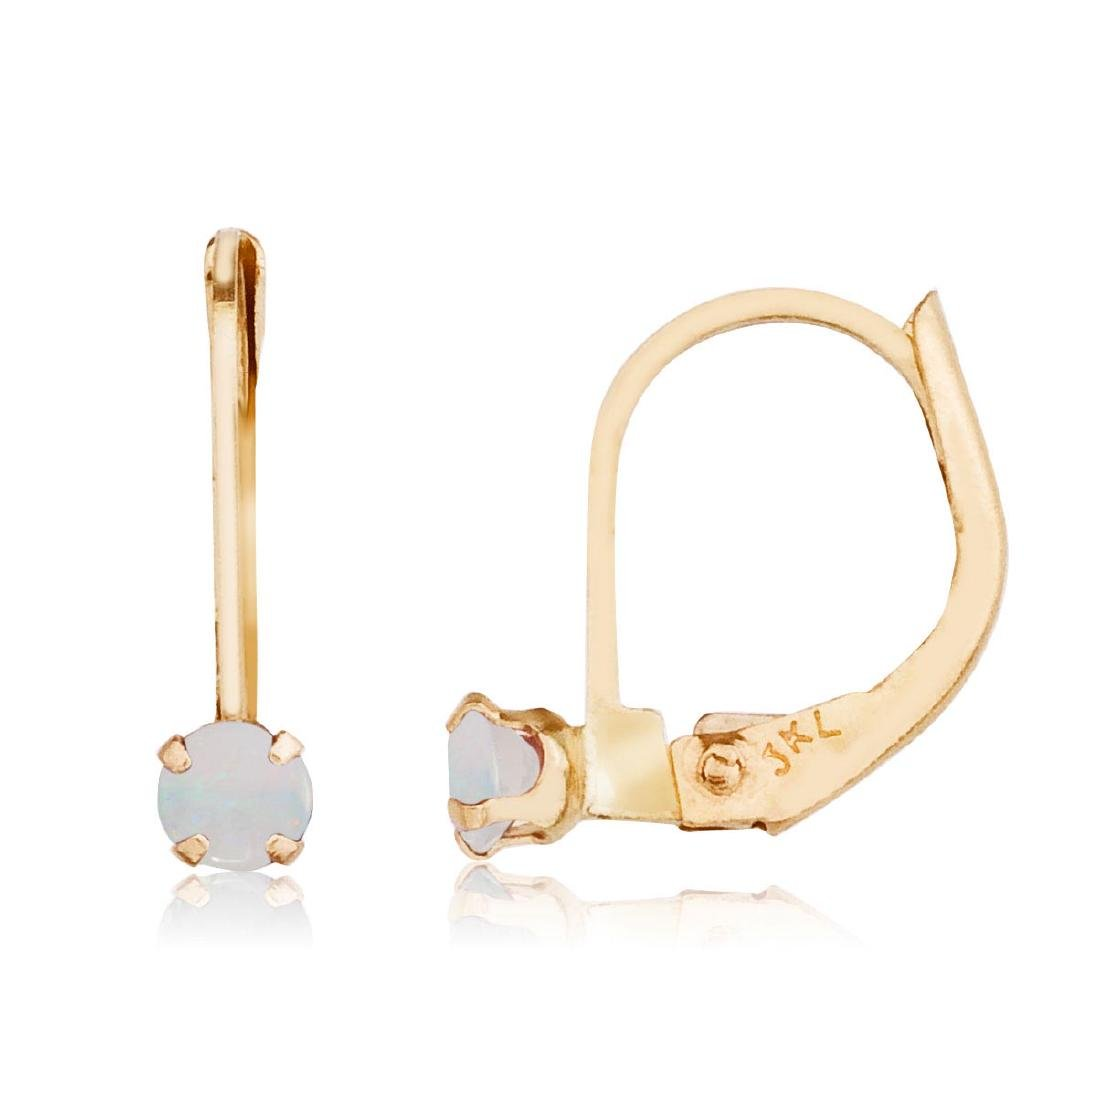 Certified 14k Opal Leverback Earrings